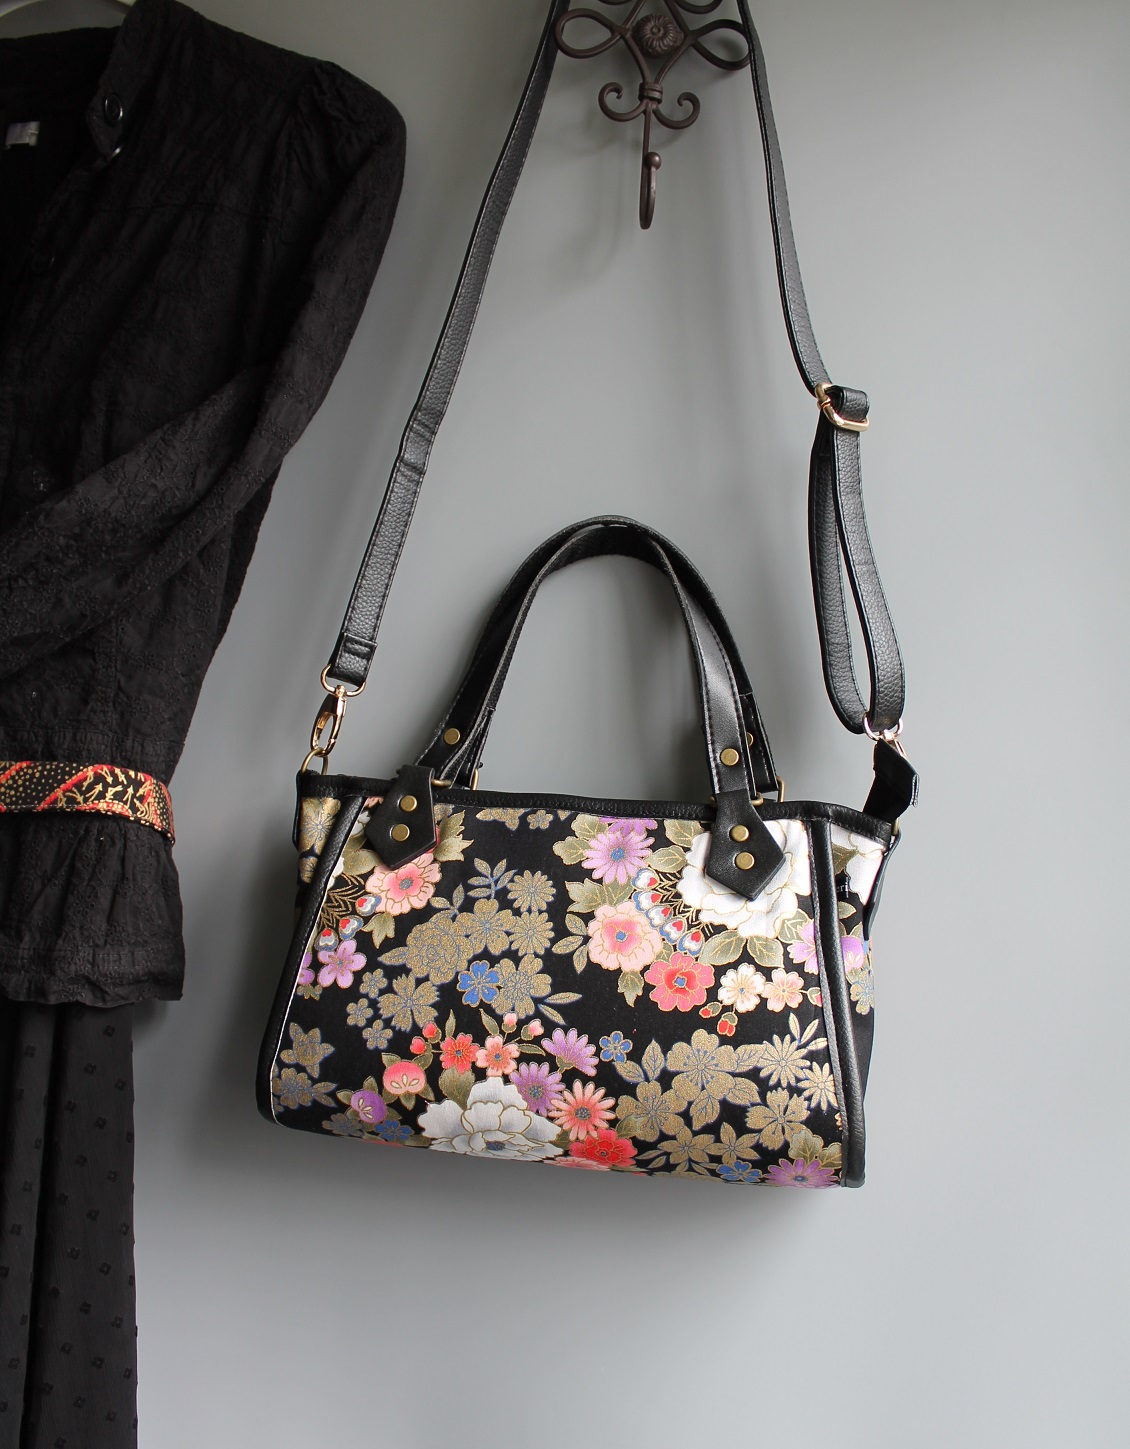 Cross body / hand bag - Kanako